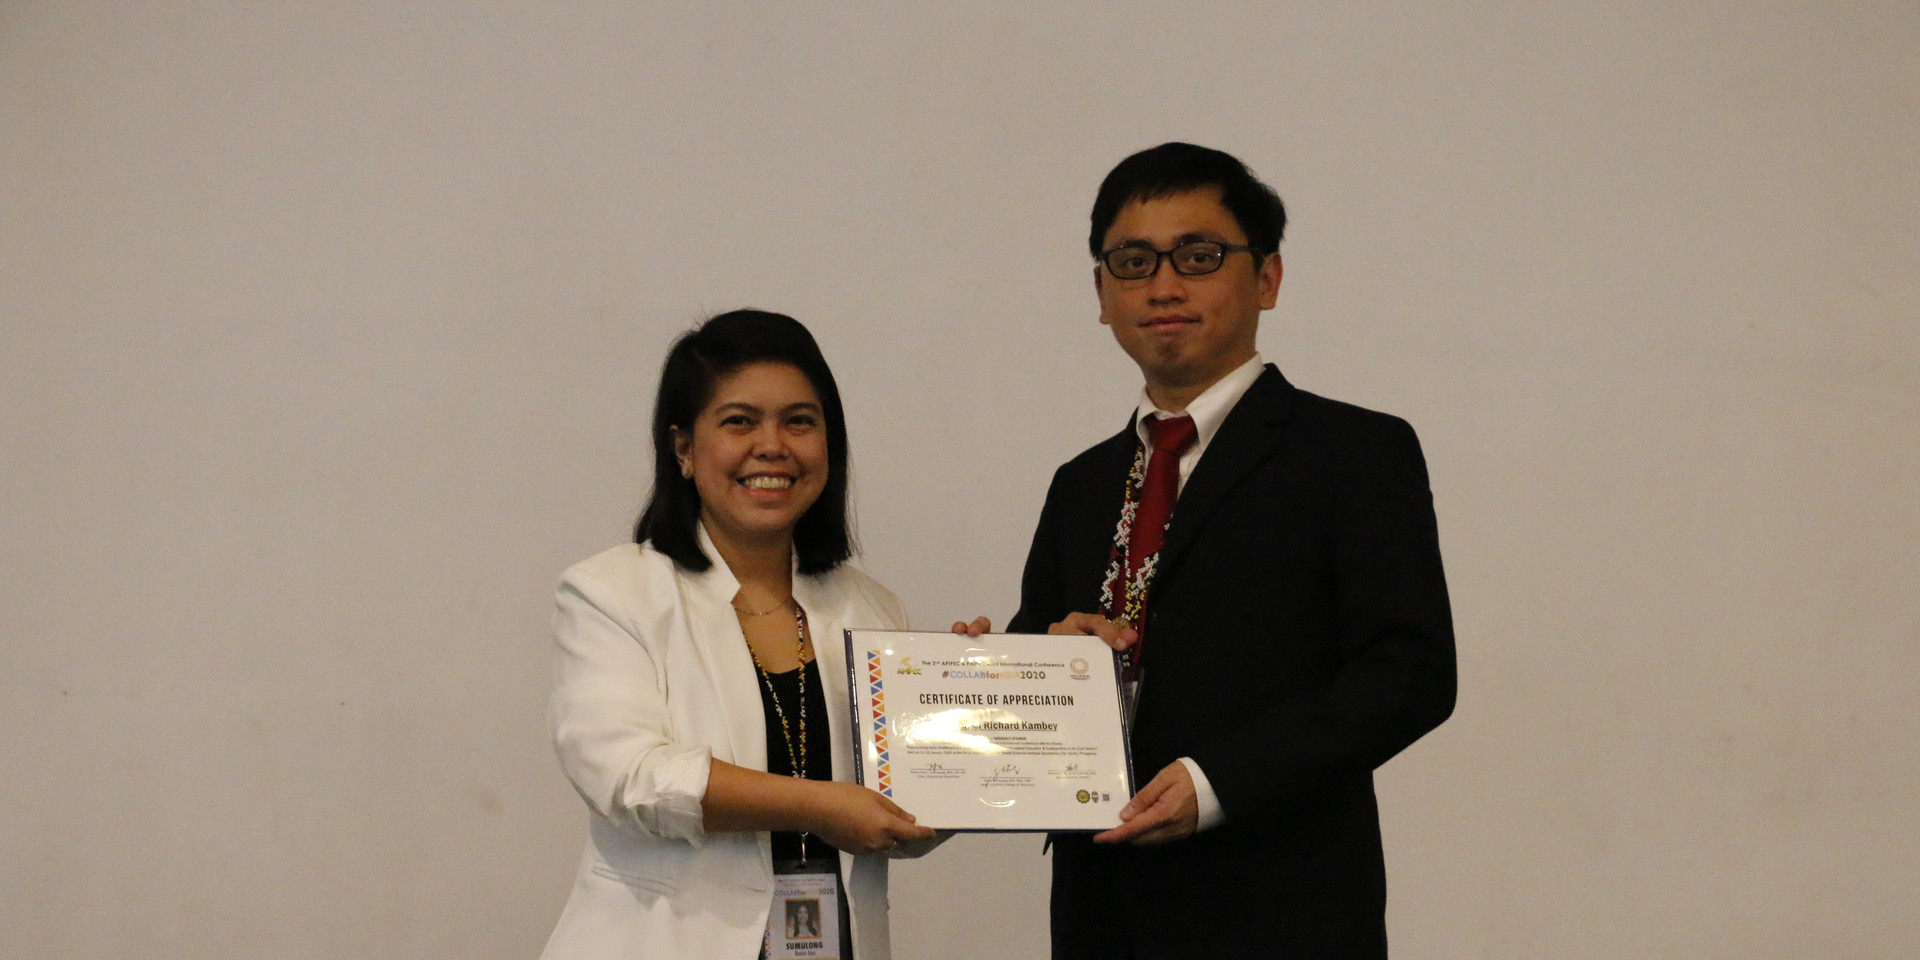 PHIPEC and APIPEC Networks - Ms. Reeva Ann Sumulong and Dr. Daniel Kambey